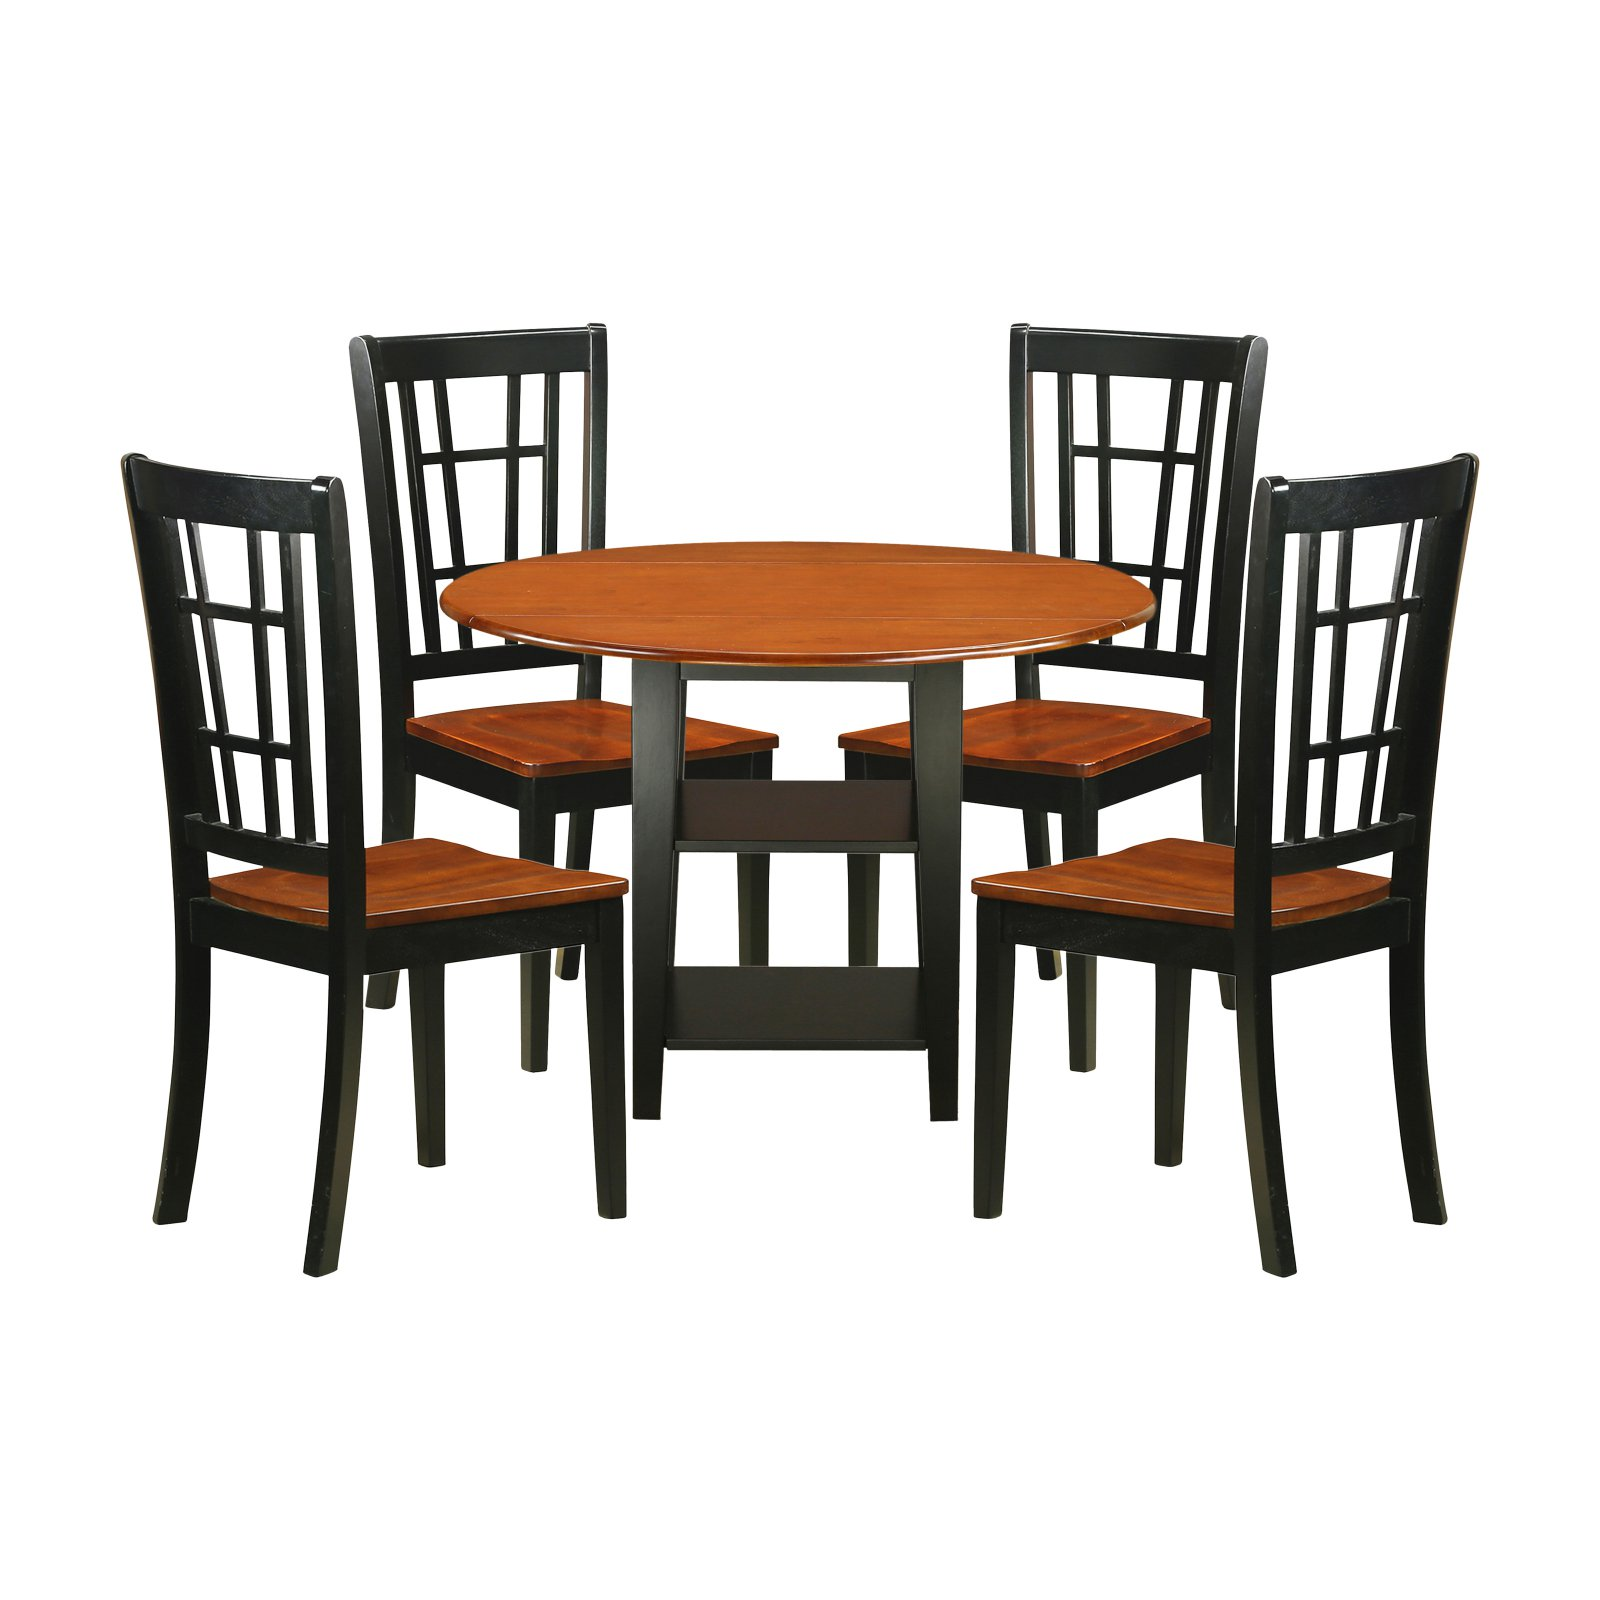 Silver Dining Table And Chairs, East West Furniture Sudbury 5 Piece Dual Drop Leaf Dining Table Set With Lattice Back C Solid Wood Dining Set Dining Table Dimensions Breakfast Nook Dining Set